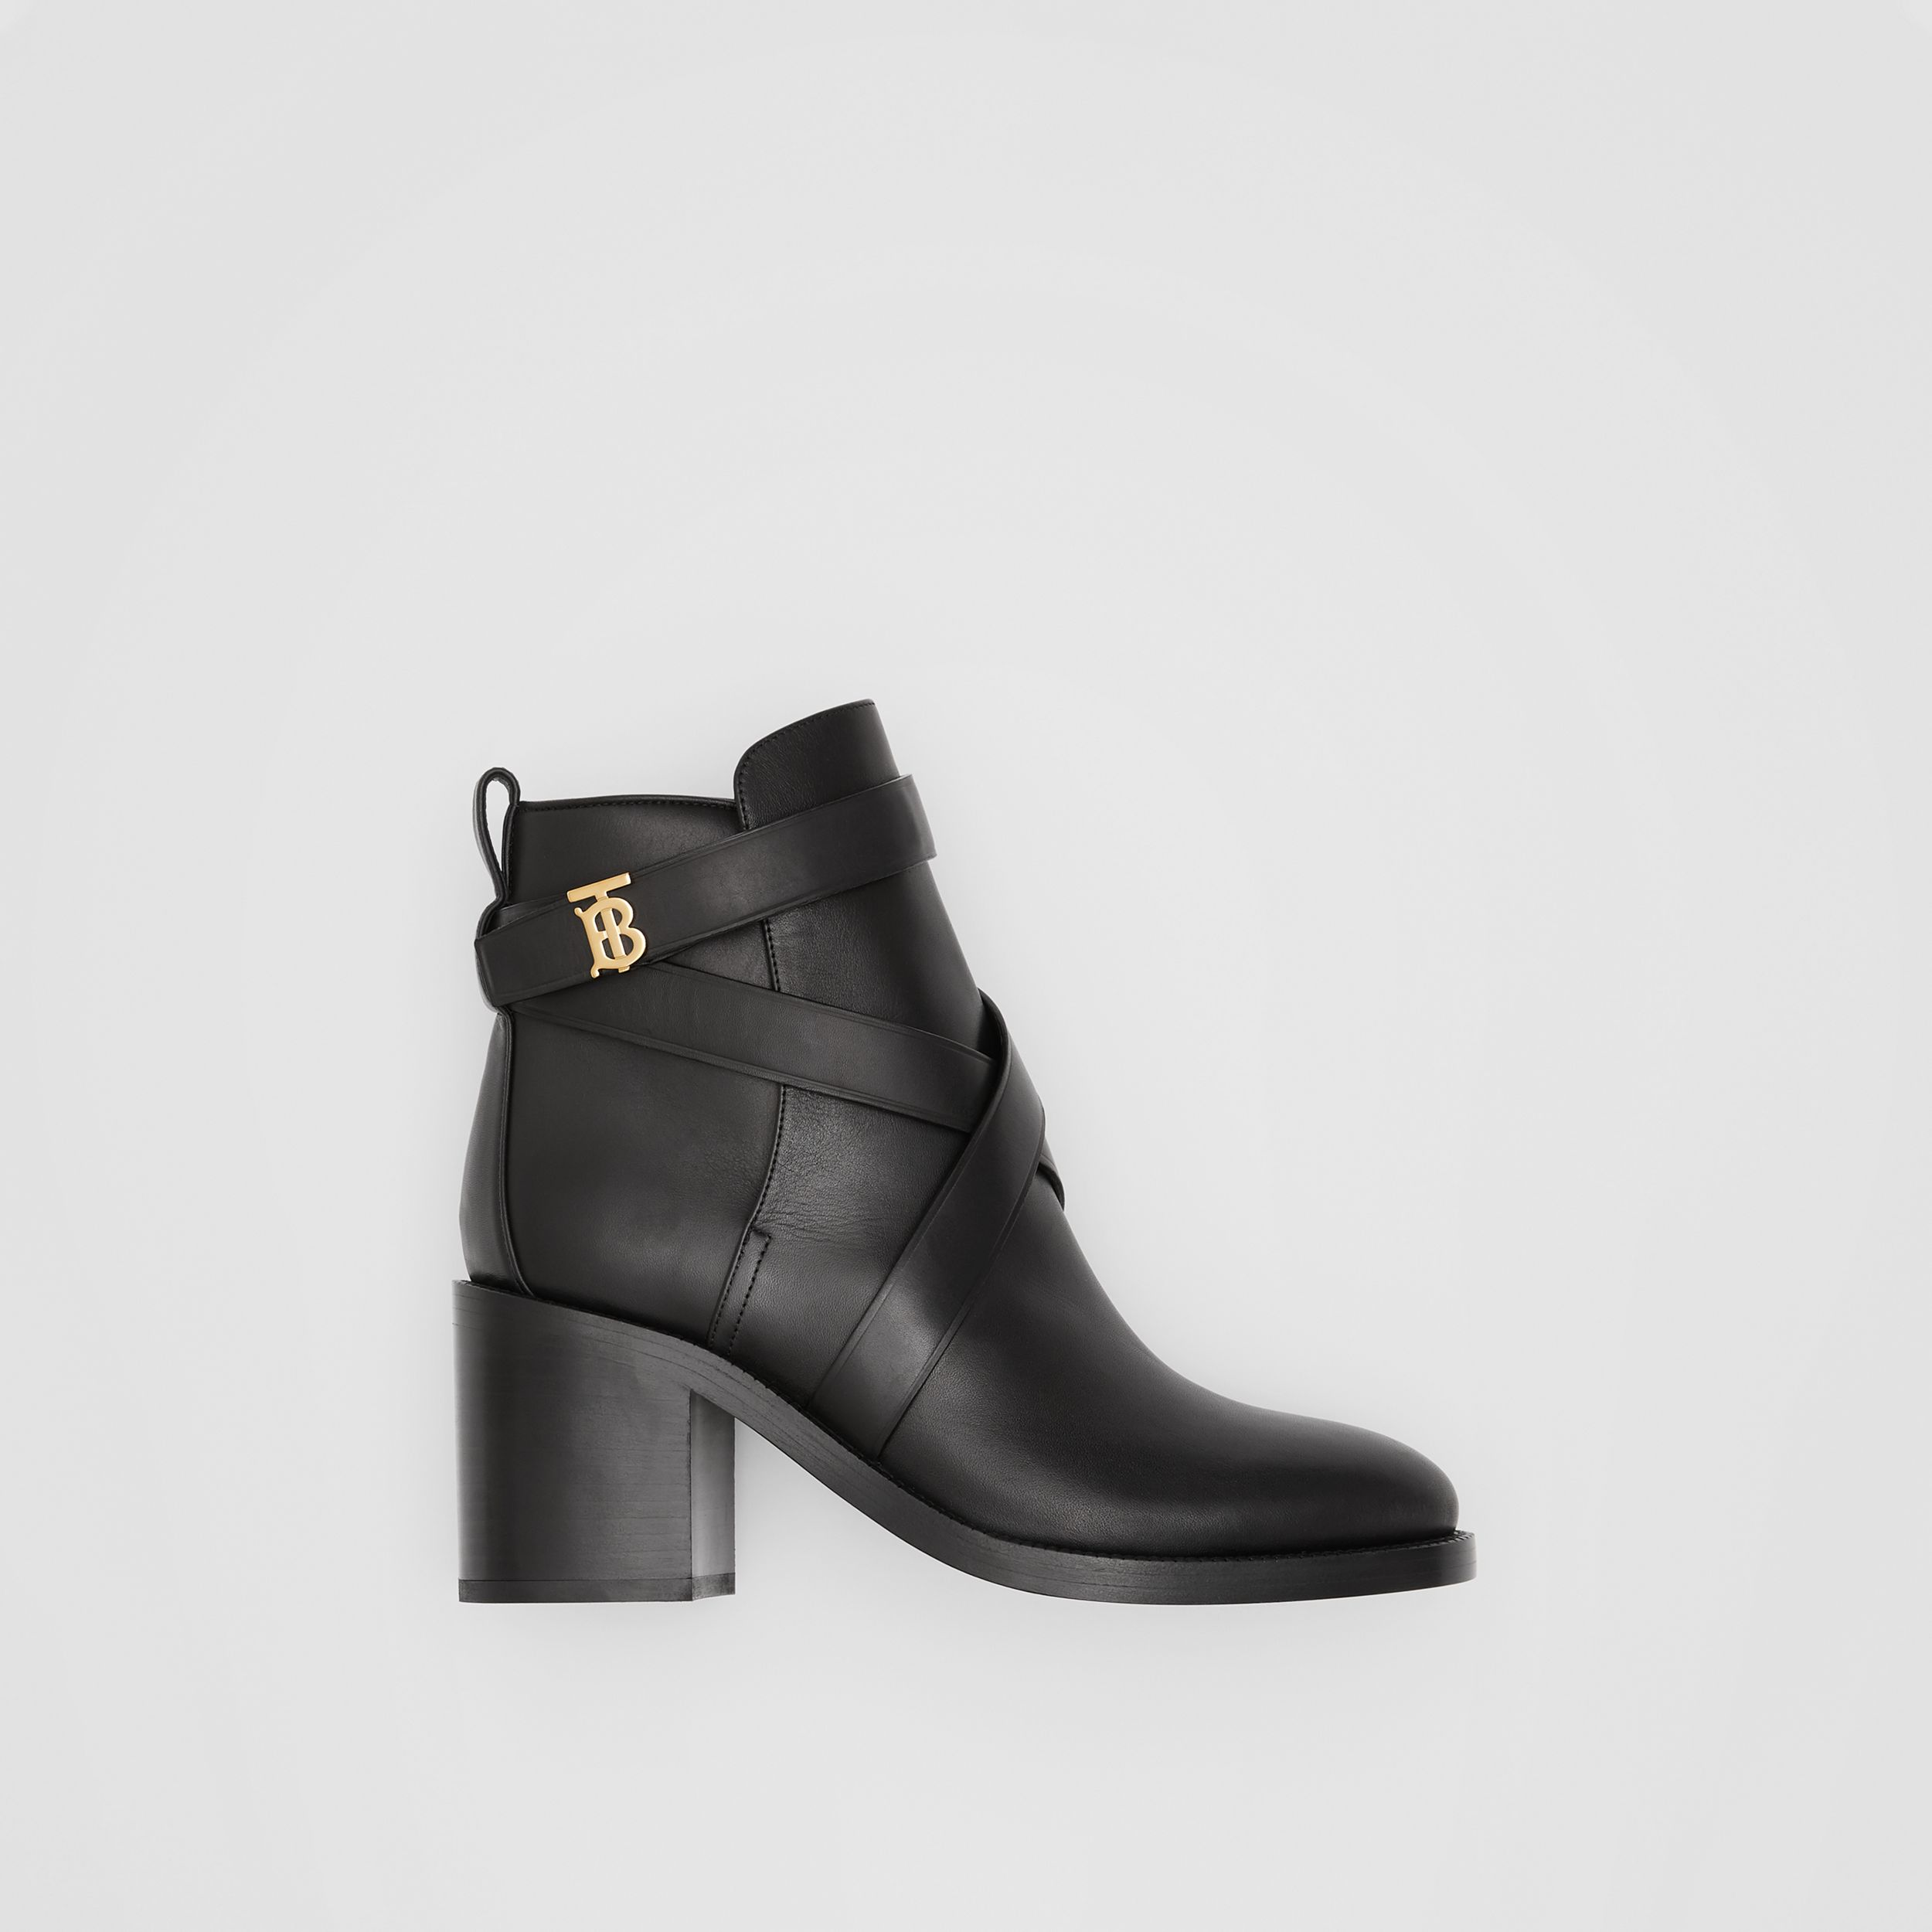 Monogram Motif Leather Ankle Boots in Black - Women | Burberry Australia - 1